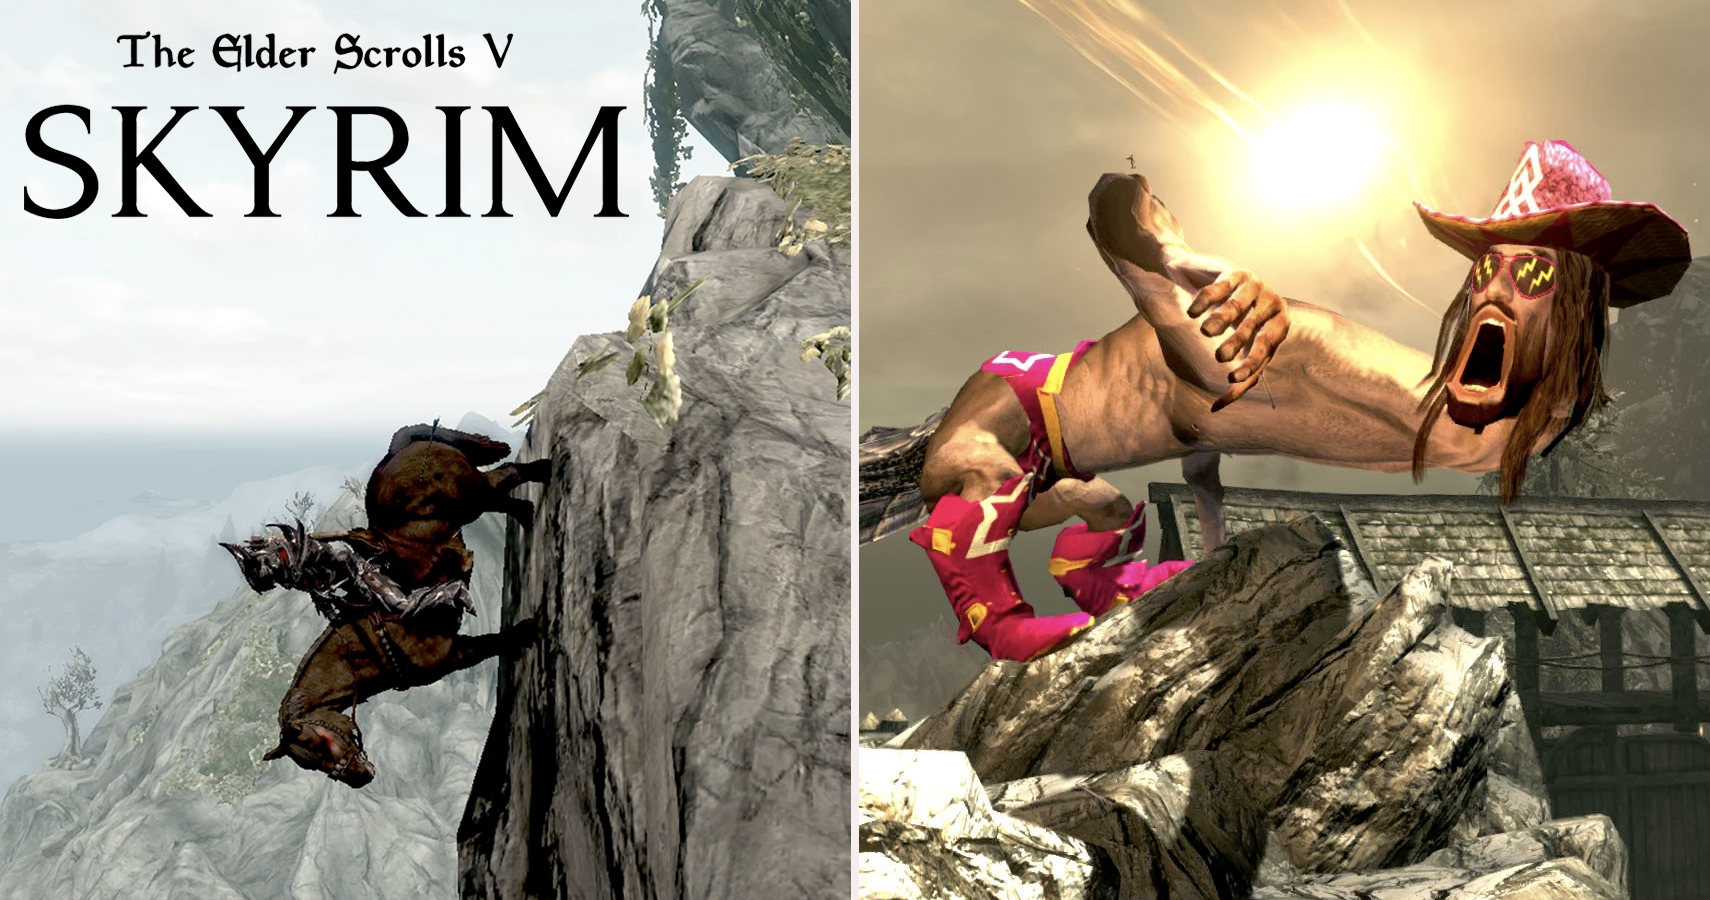 Do everything in Skyrim with one character? - General ...